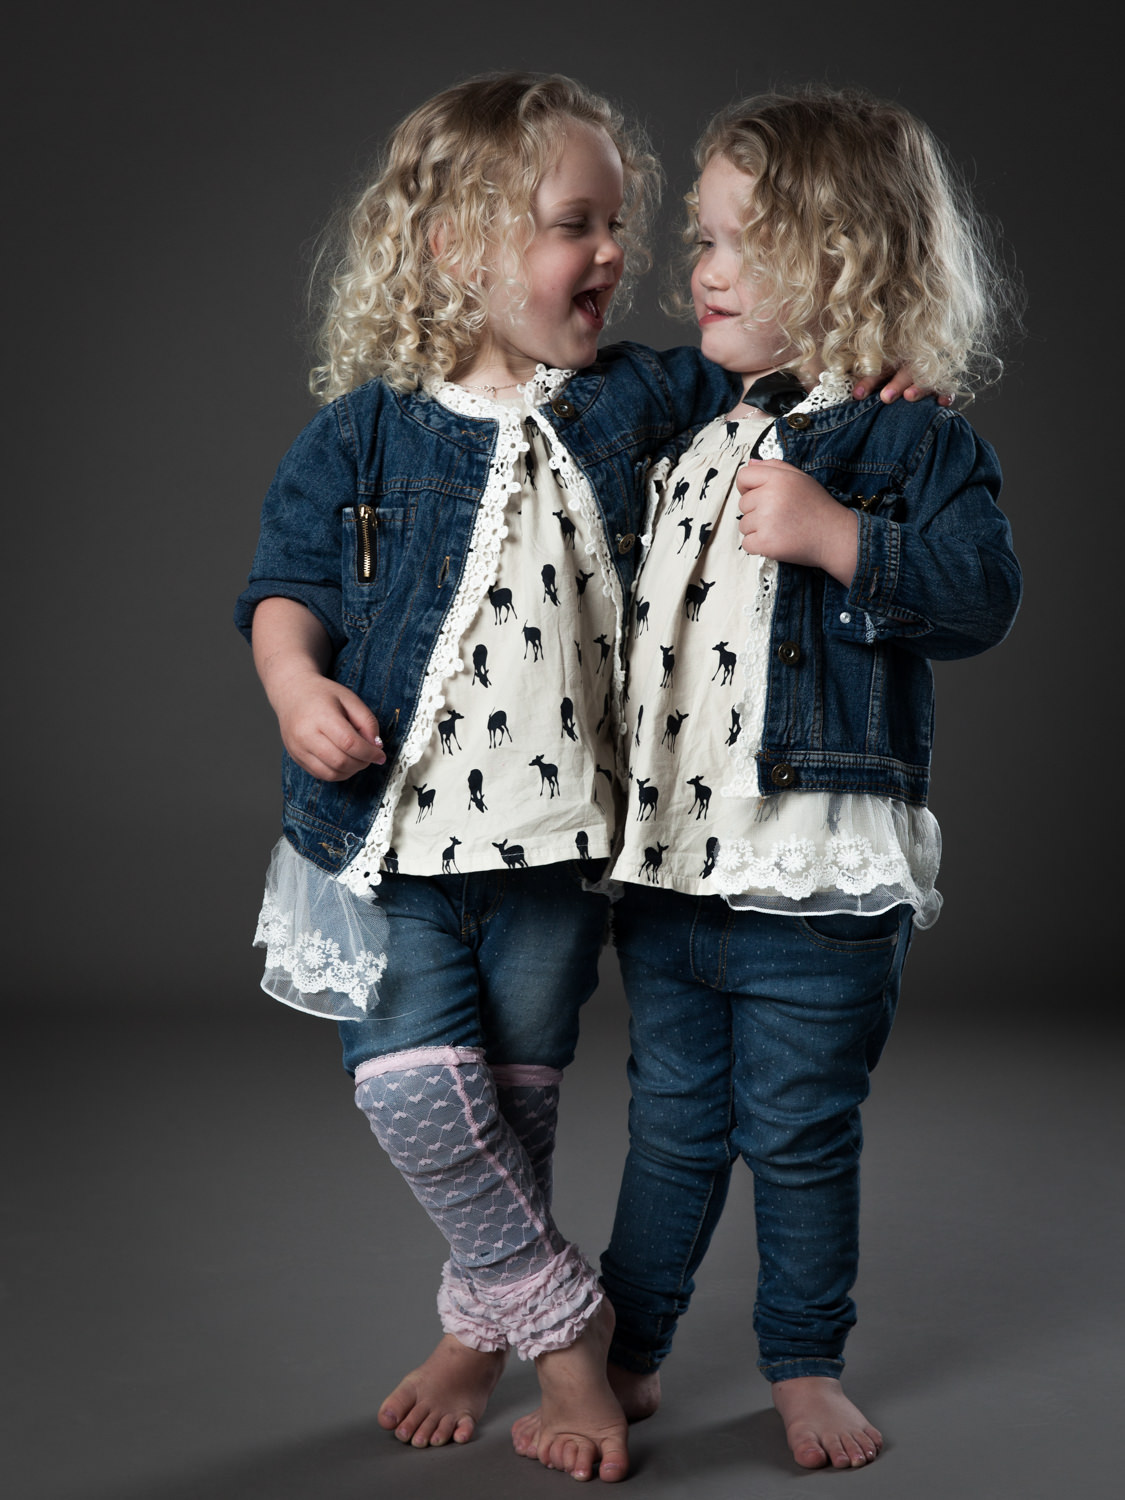 tim gerges capetown photographer kids fashion-6571.jpg